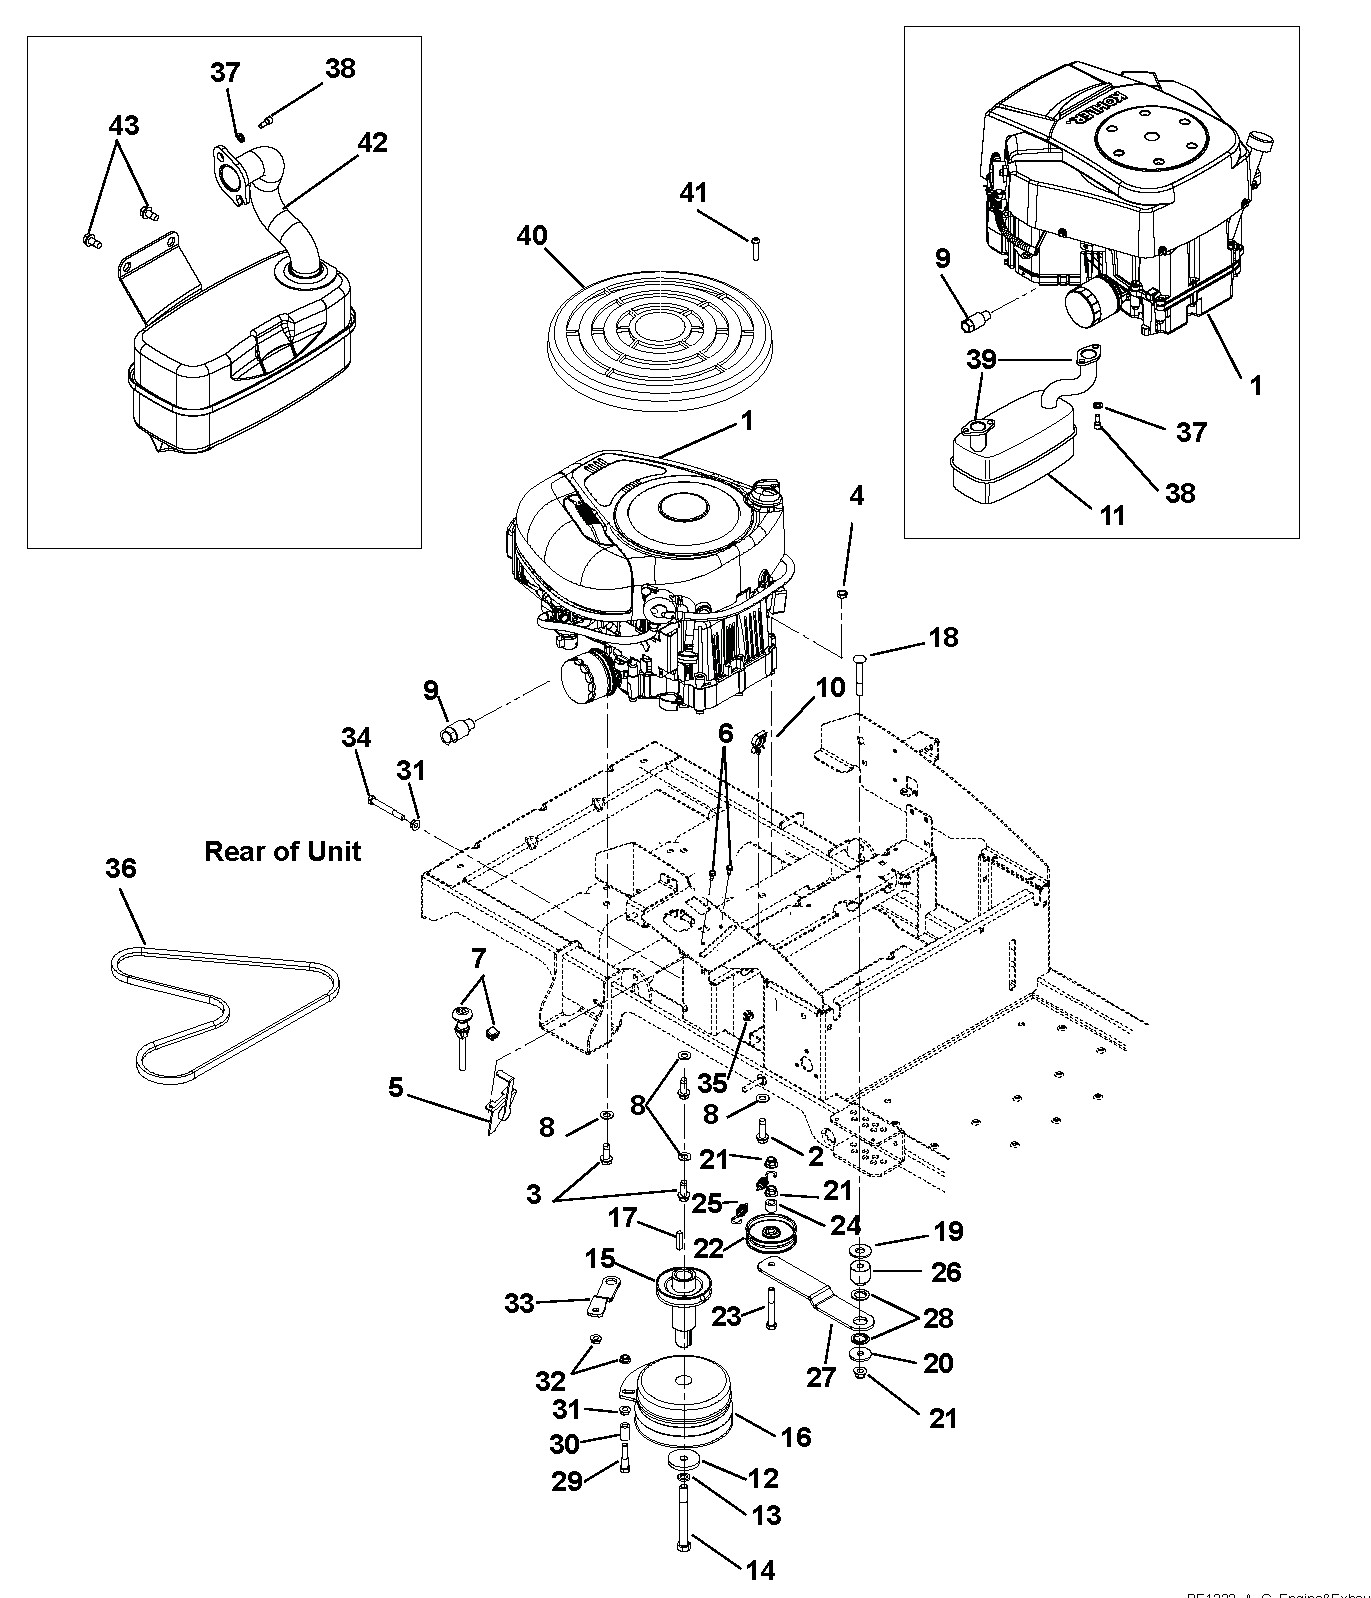 Ariens Mower Parts Diagram Ariens Parts List and Diagram Of Ariens Mower Parts Diagram